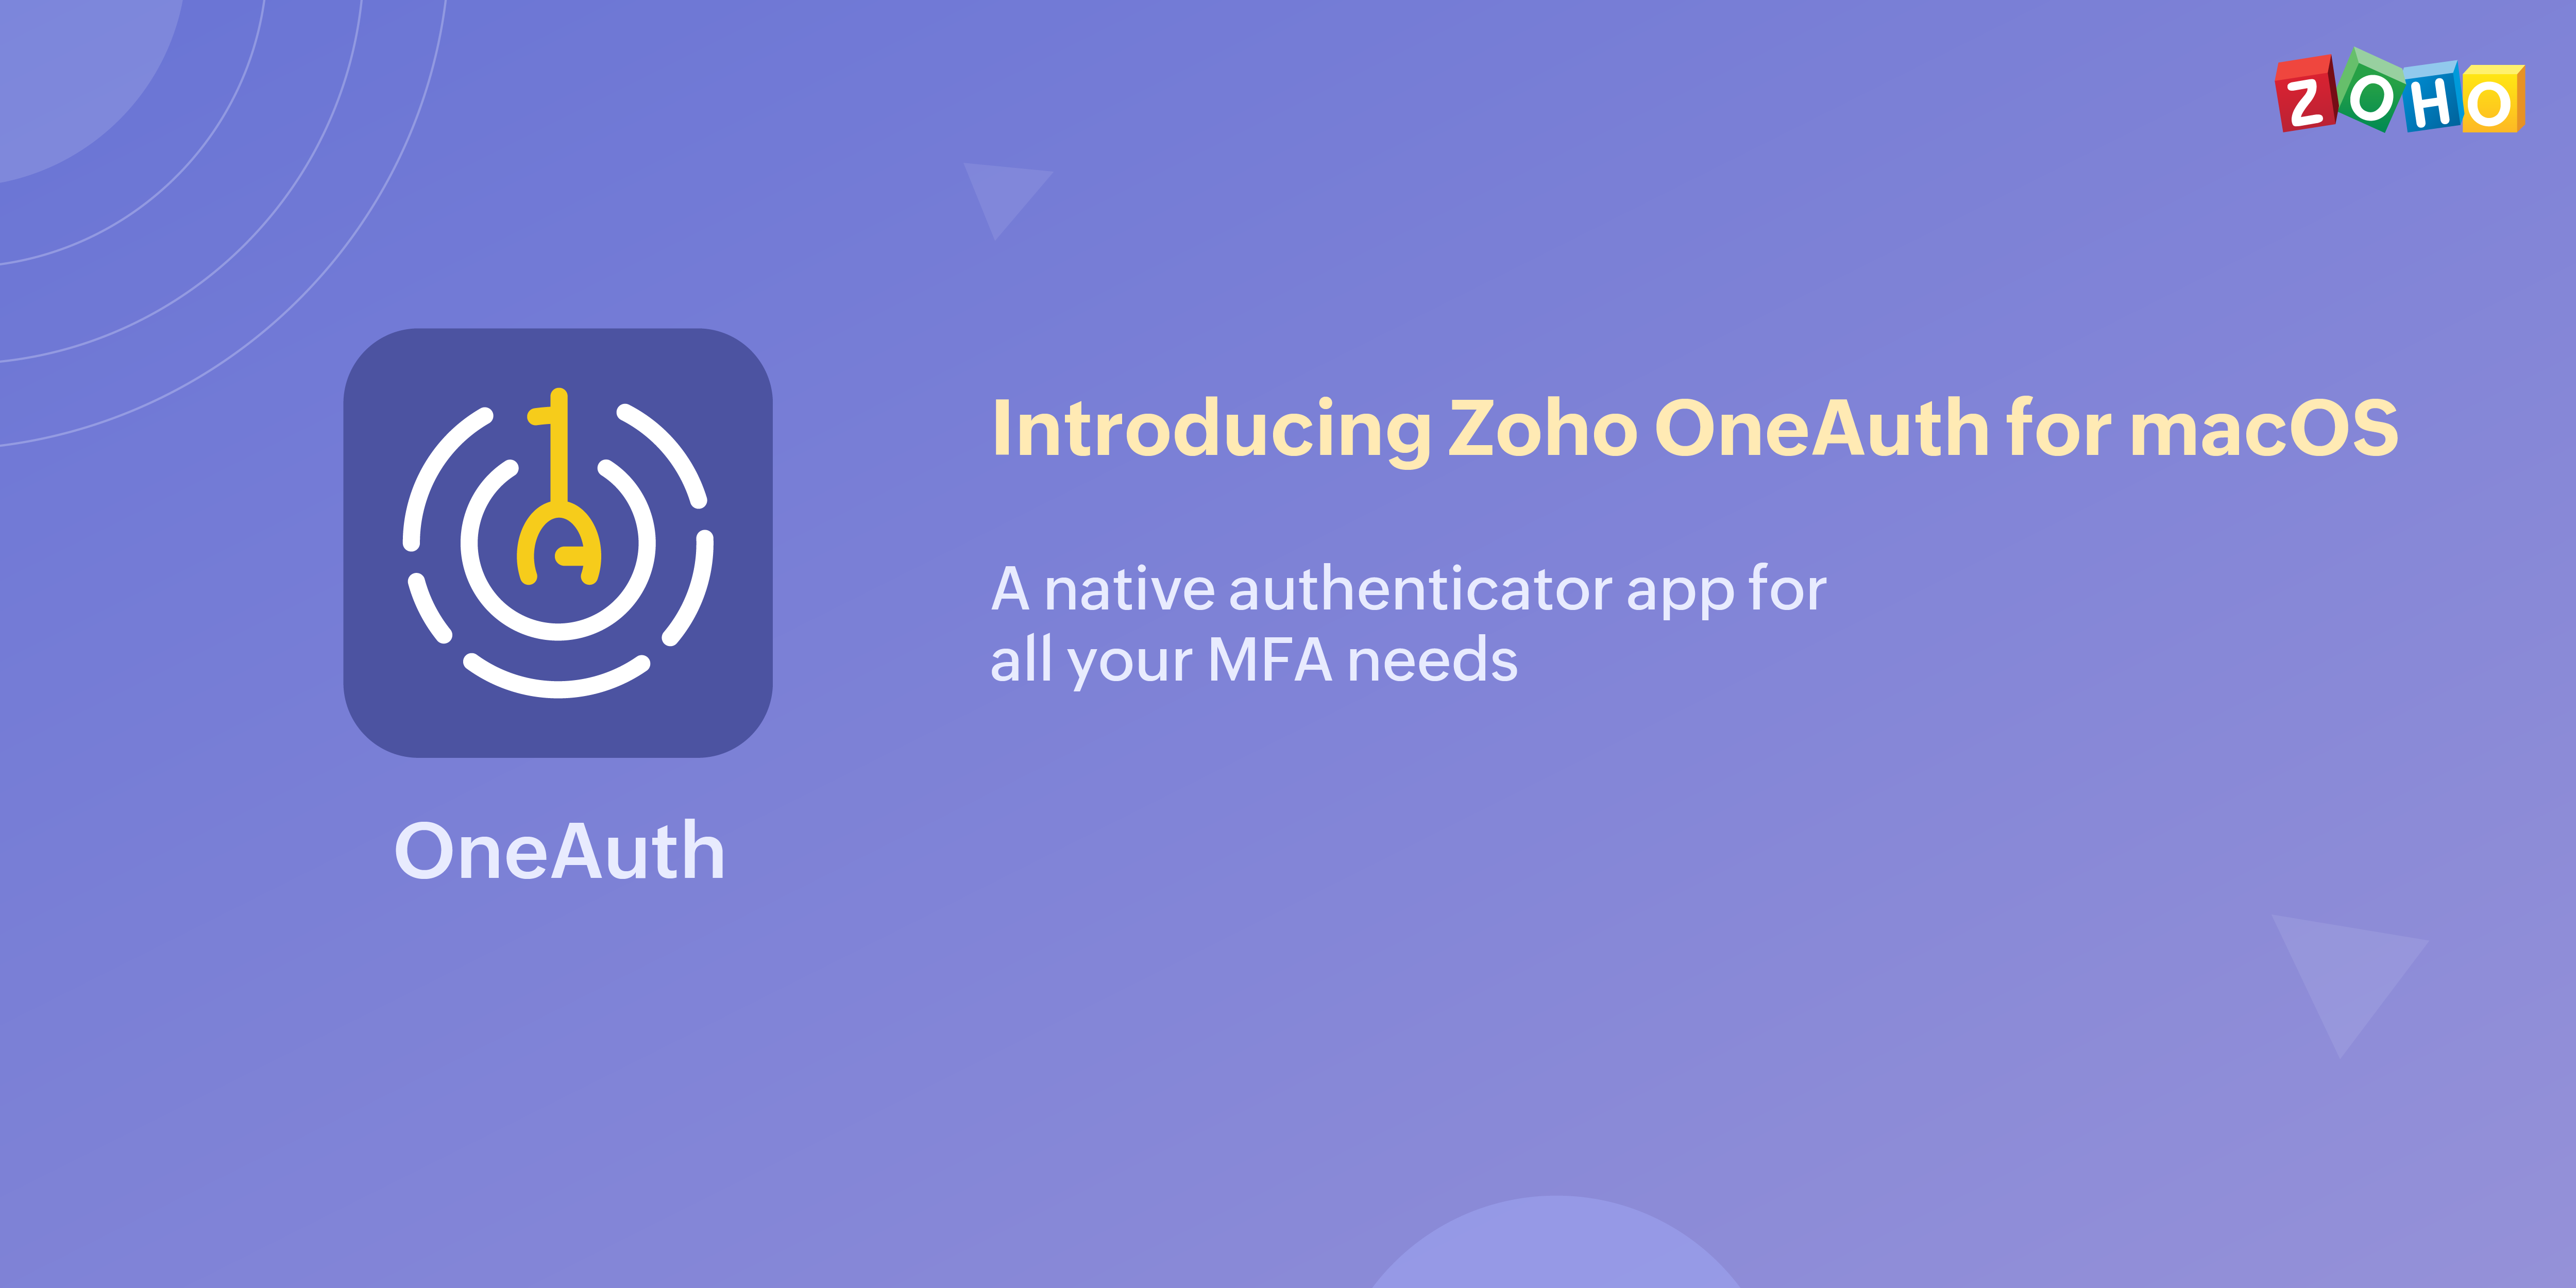 Introducing Zoho OneAuth – Authenticator for macOS